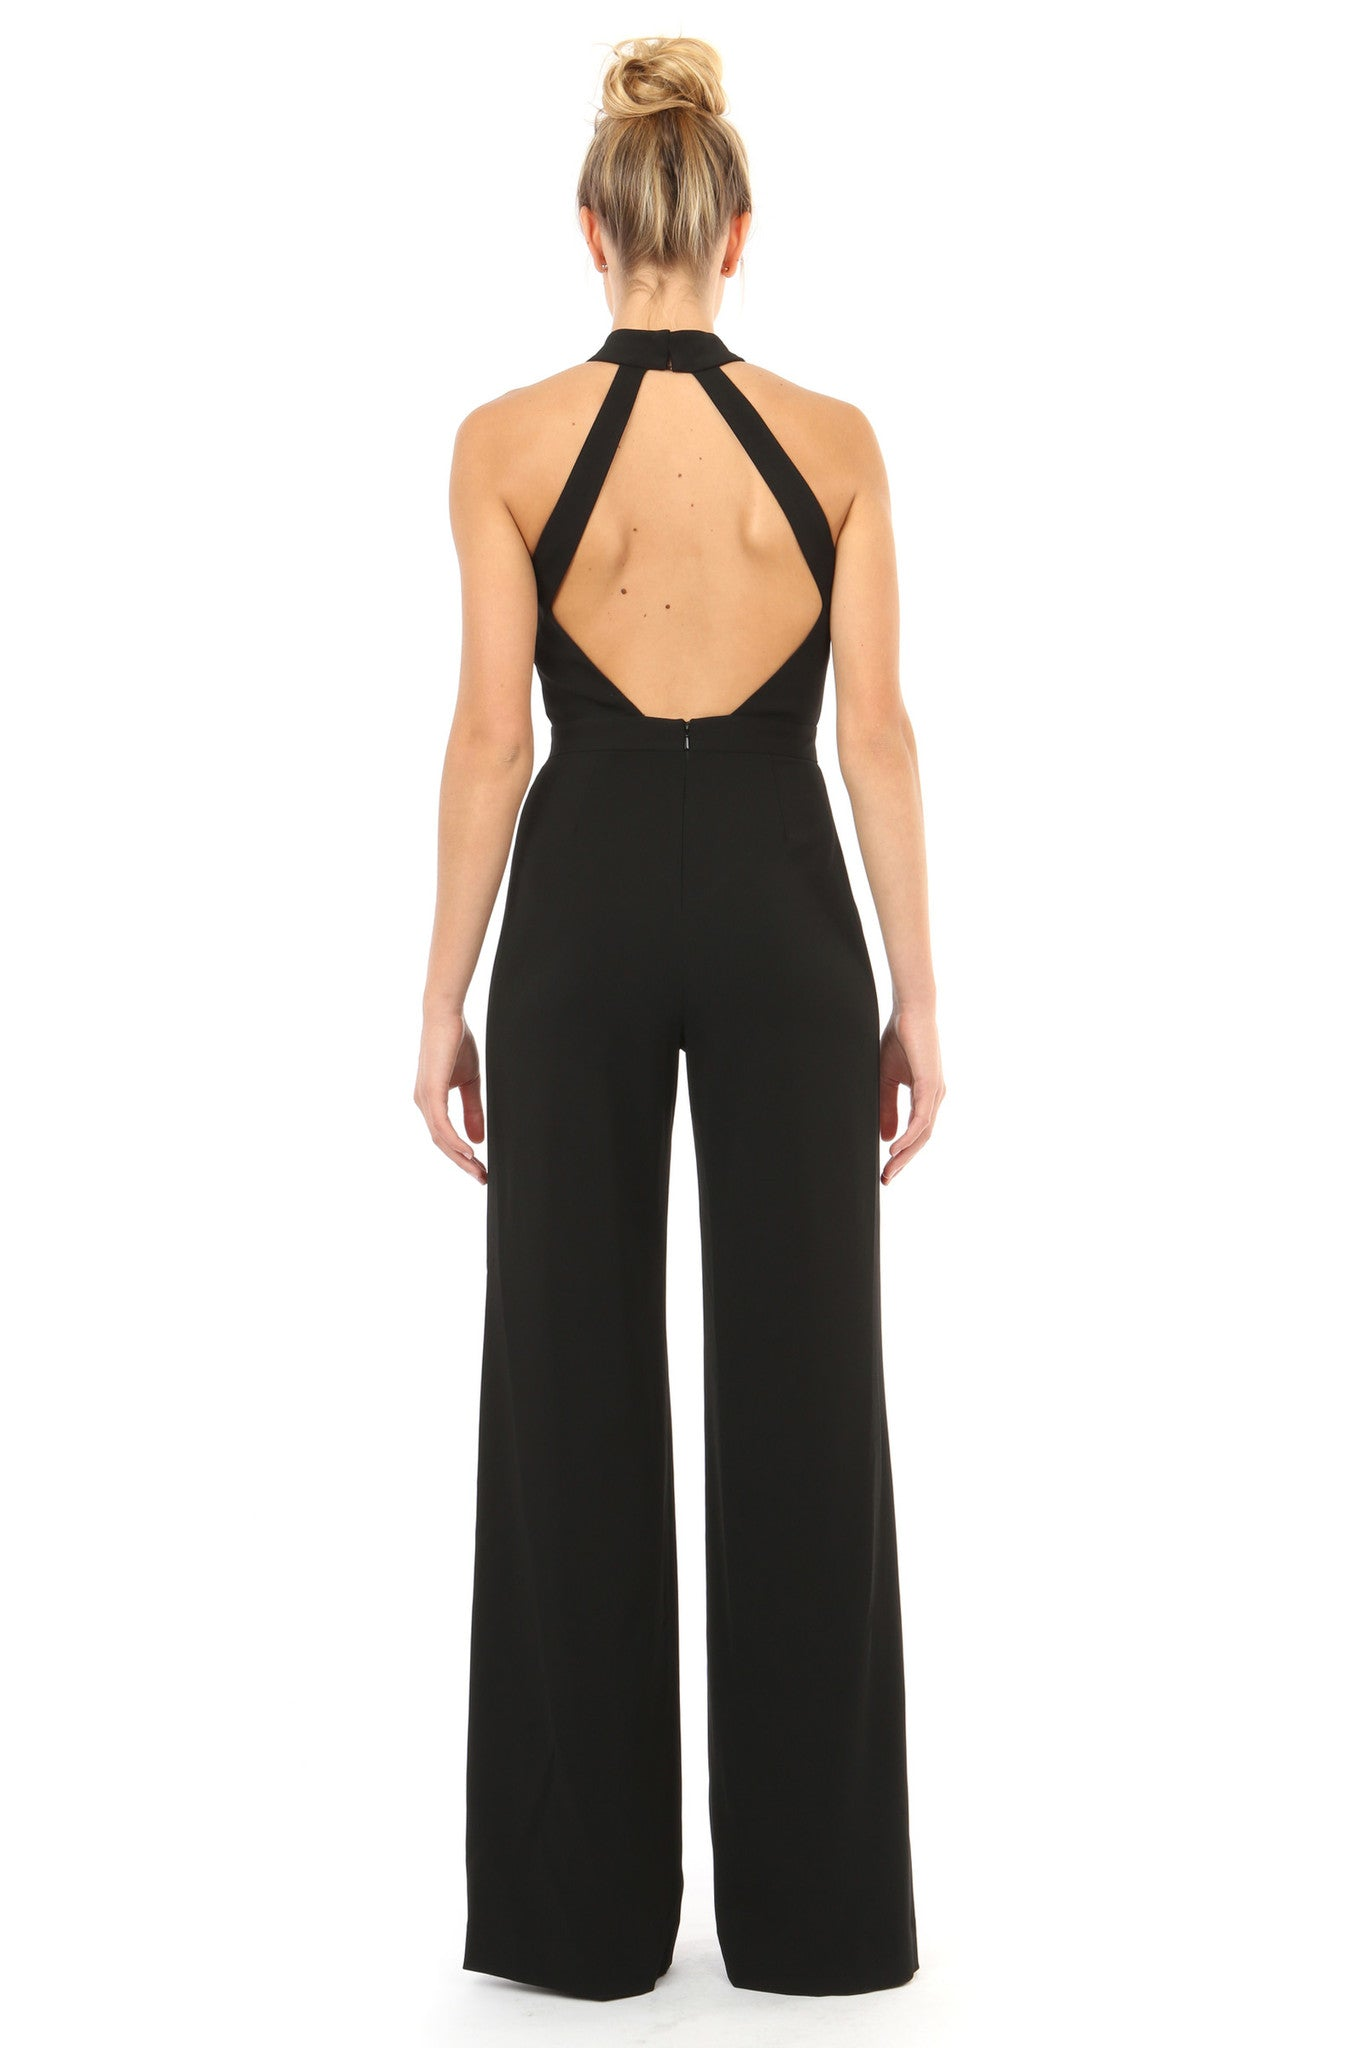 Jay Godfrey Black Halter Neck Jumpsuit - Back View